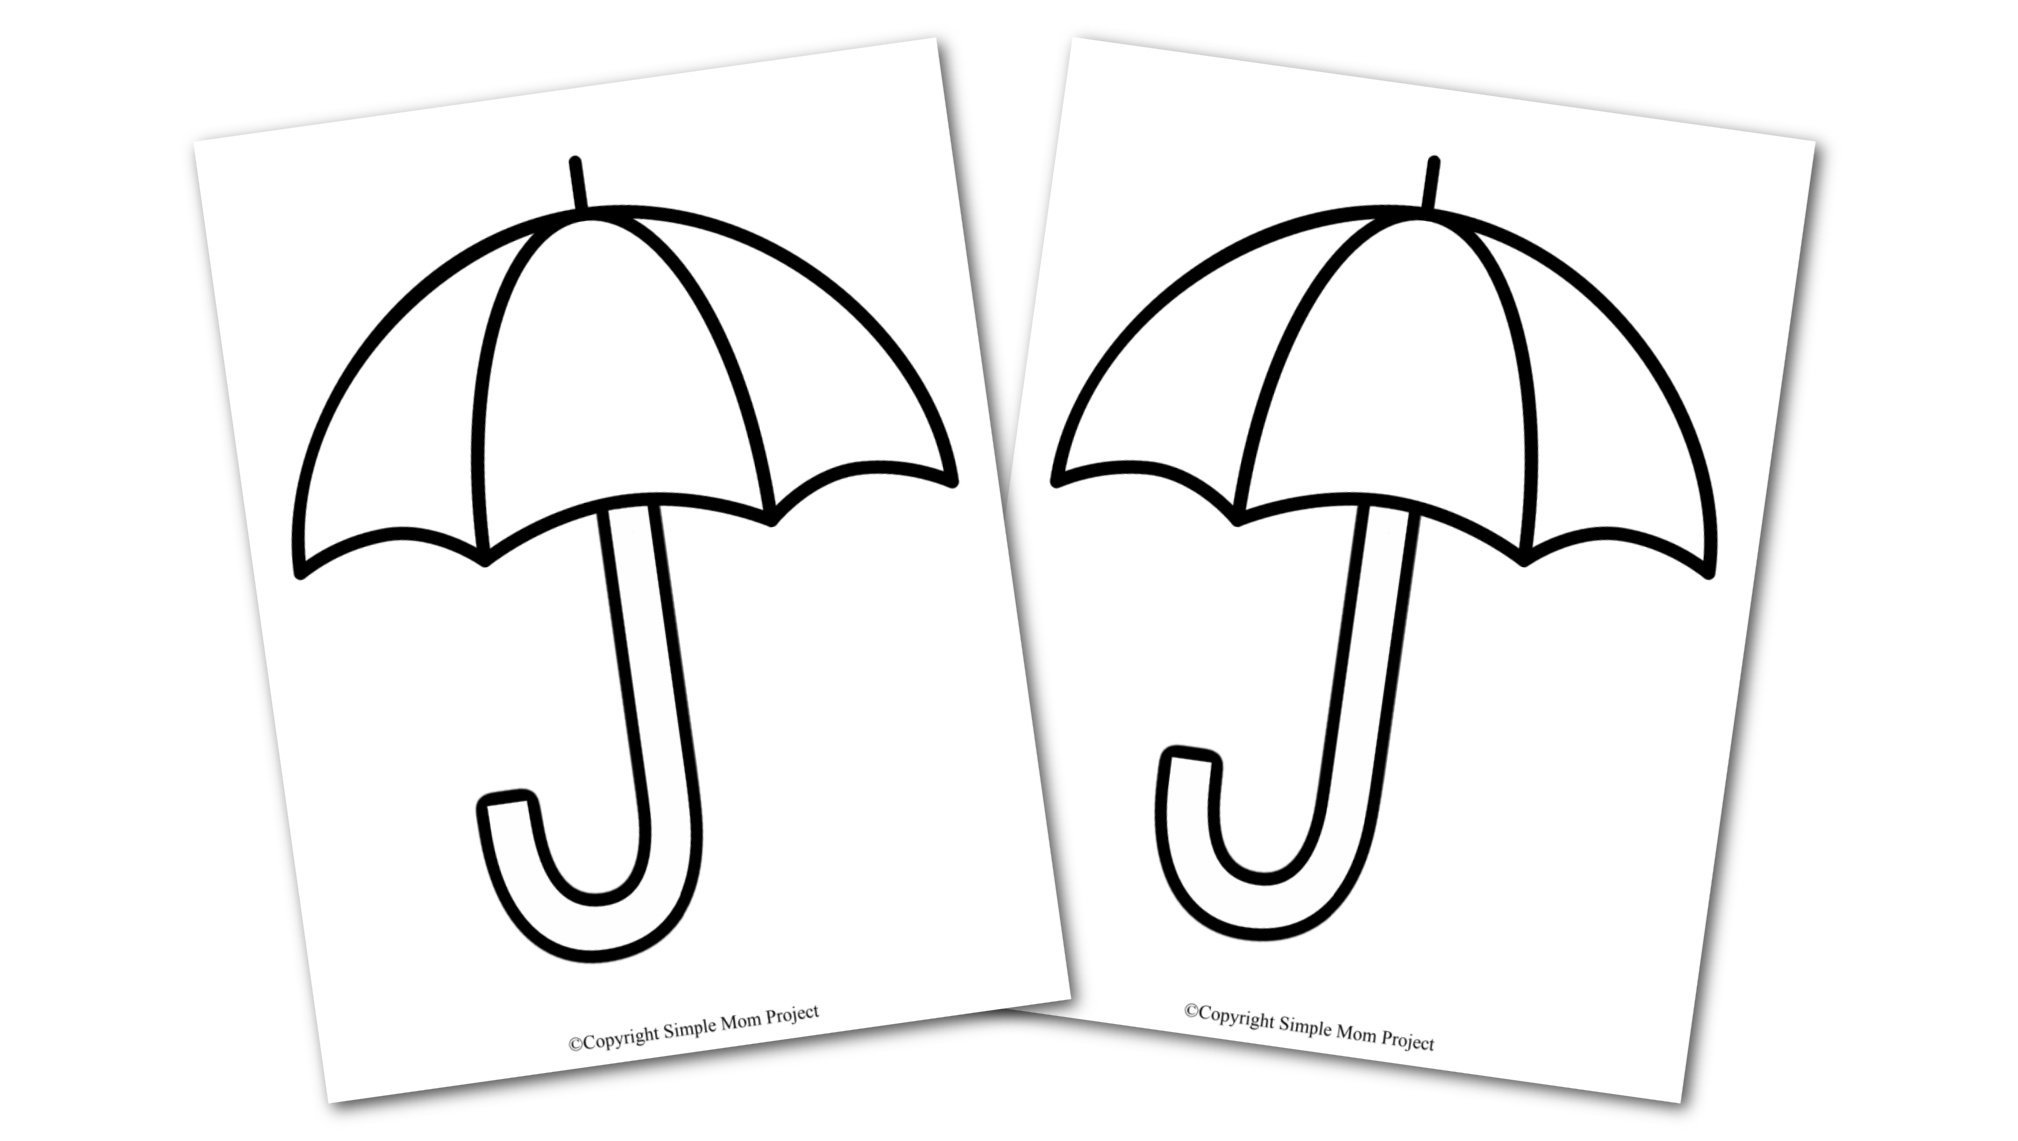 Free Printable Spring and Summer Umbrella template silhouette for kids preschoolers and toddlers